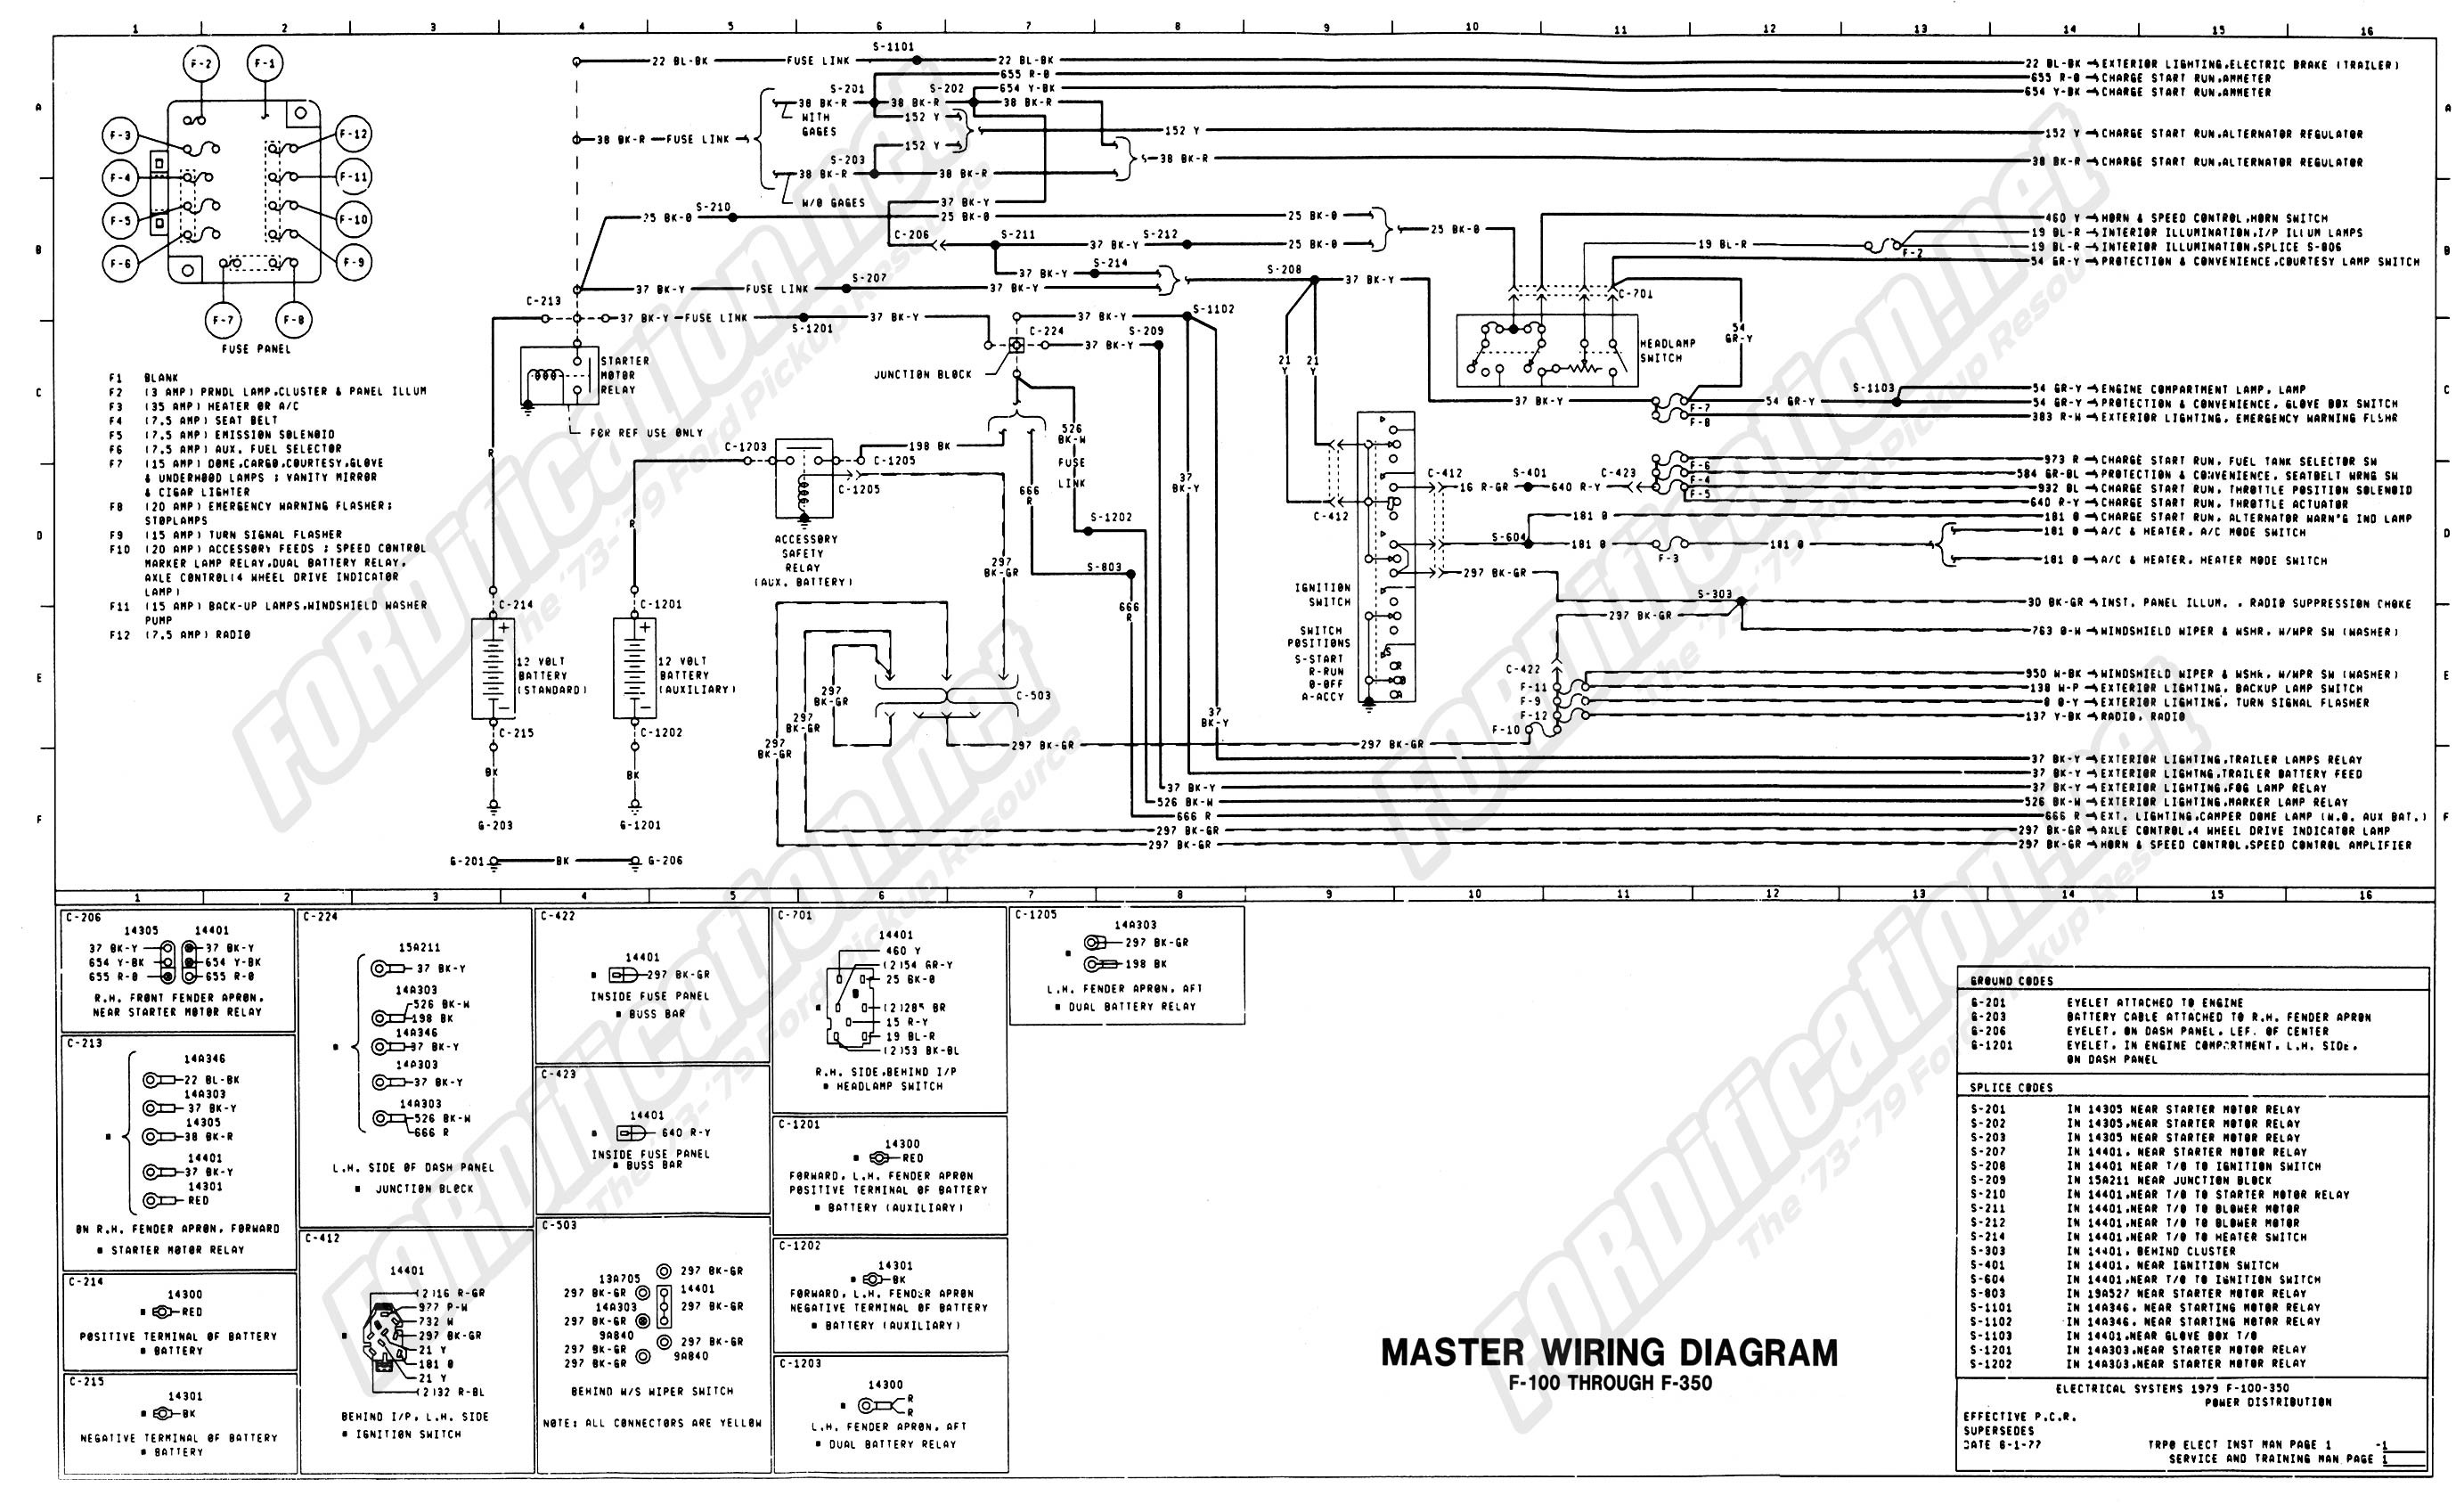 Car Starter Relay Diagram 79 F150 solenoid Wiring Diagram ford Truck Enthusiasts forums Of Car Starter Relay Diagram